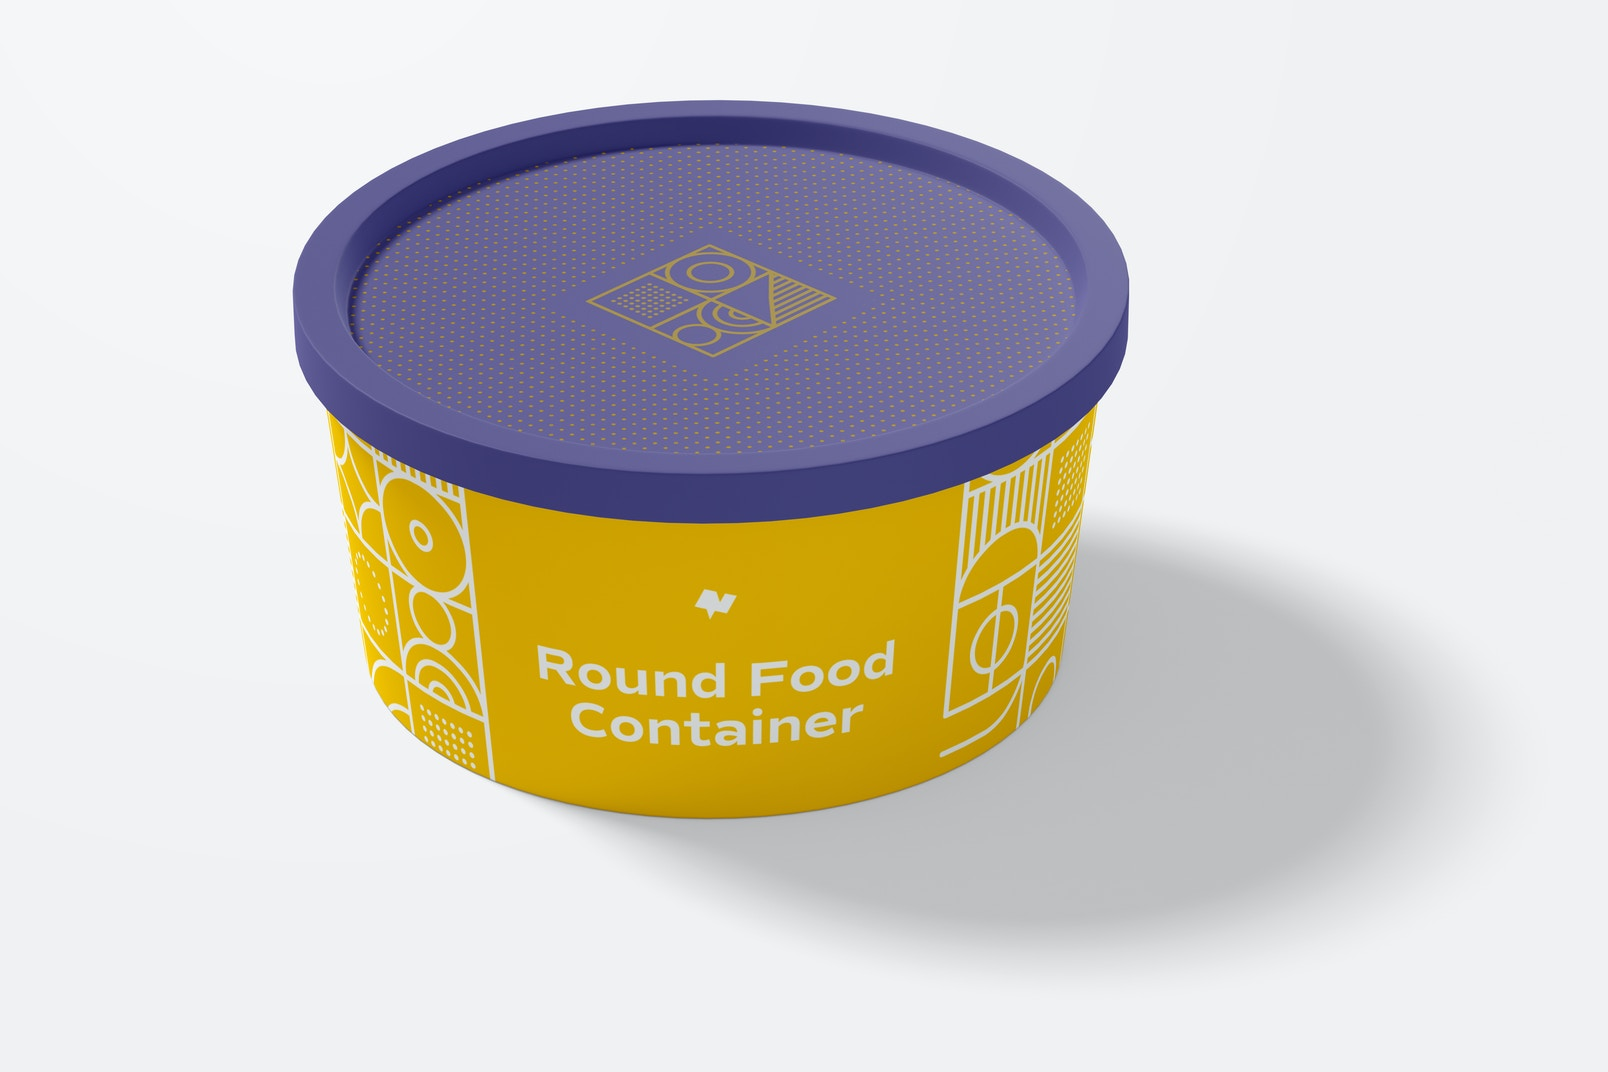 Round Plastic Food Delivery Container Mockup, Front View